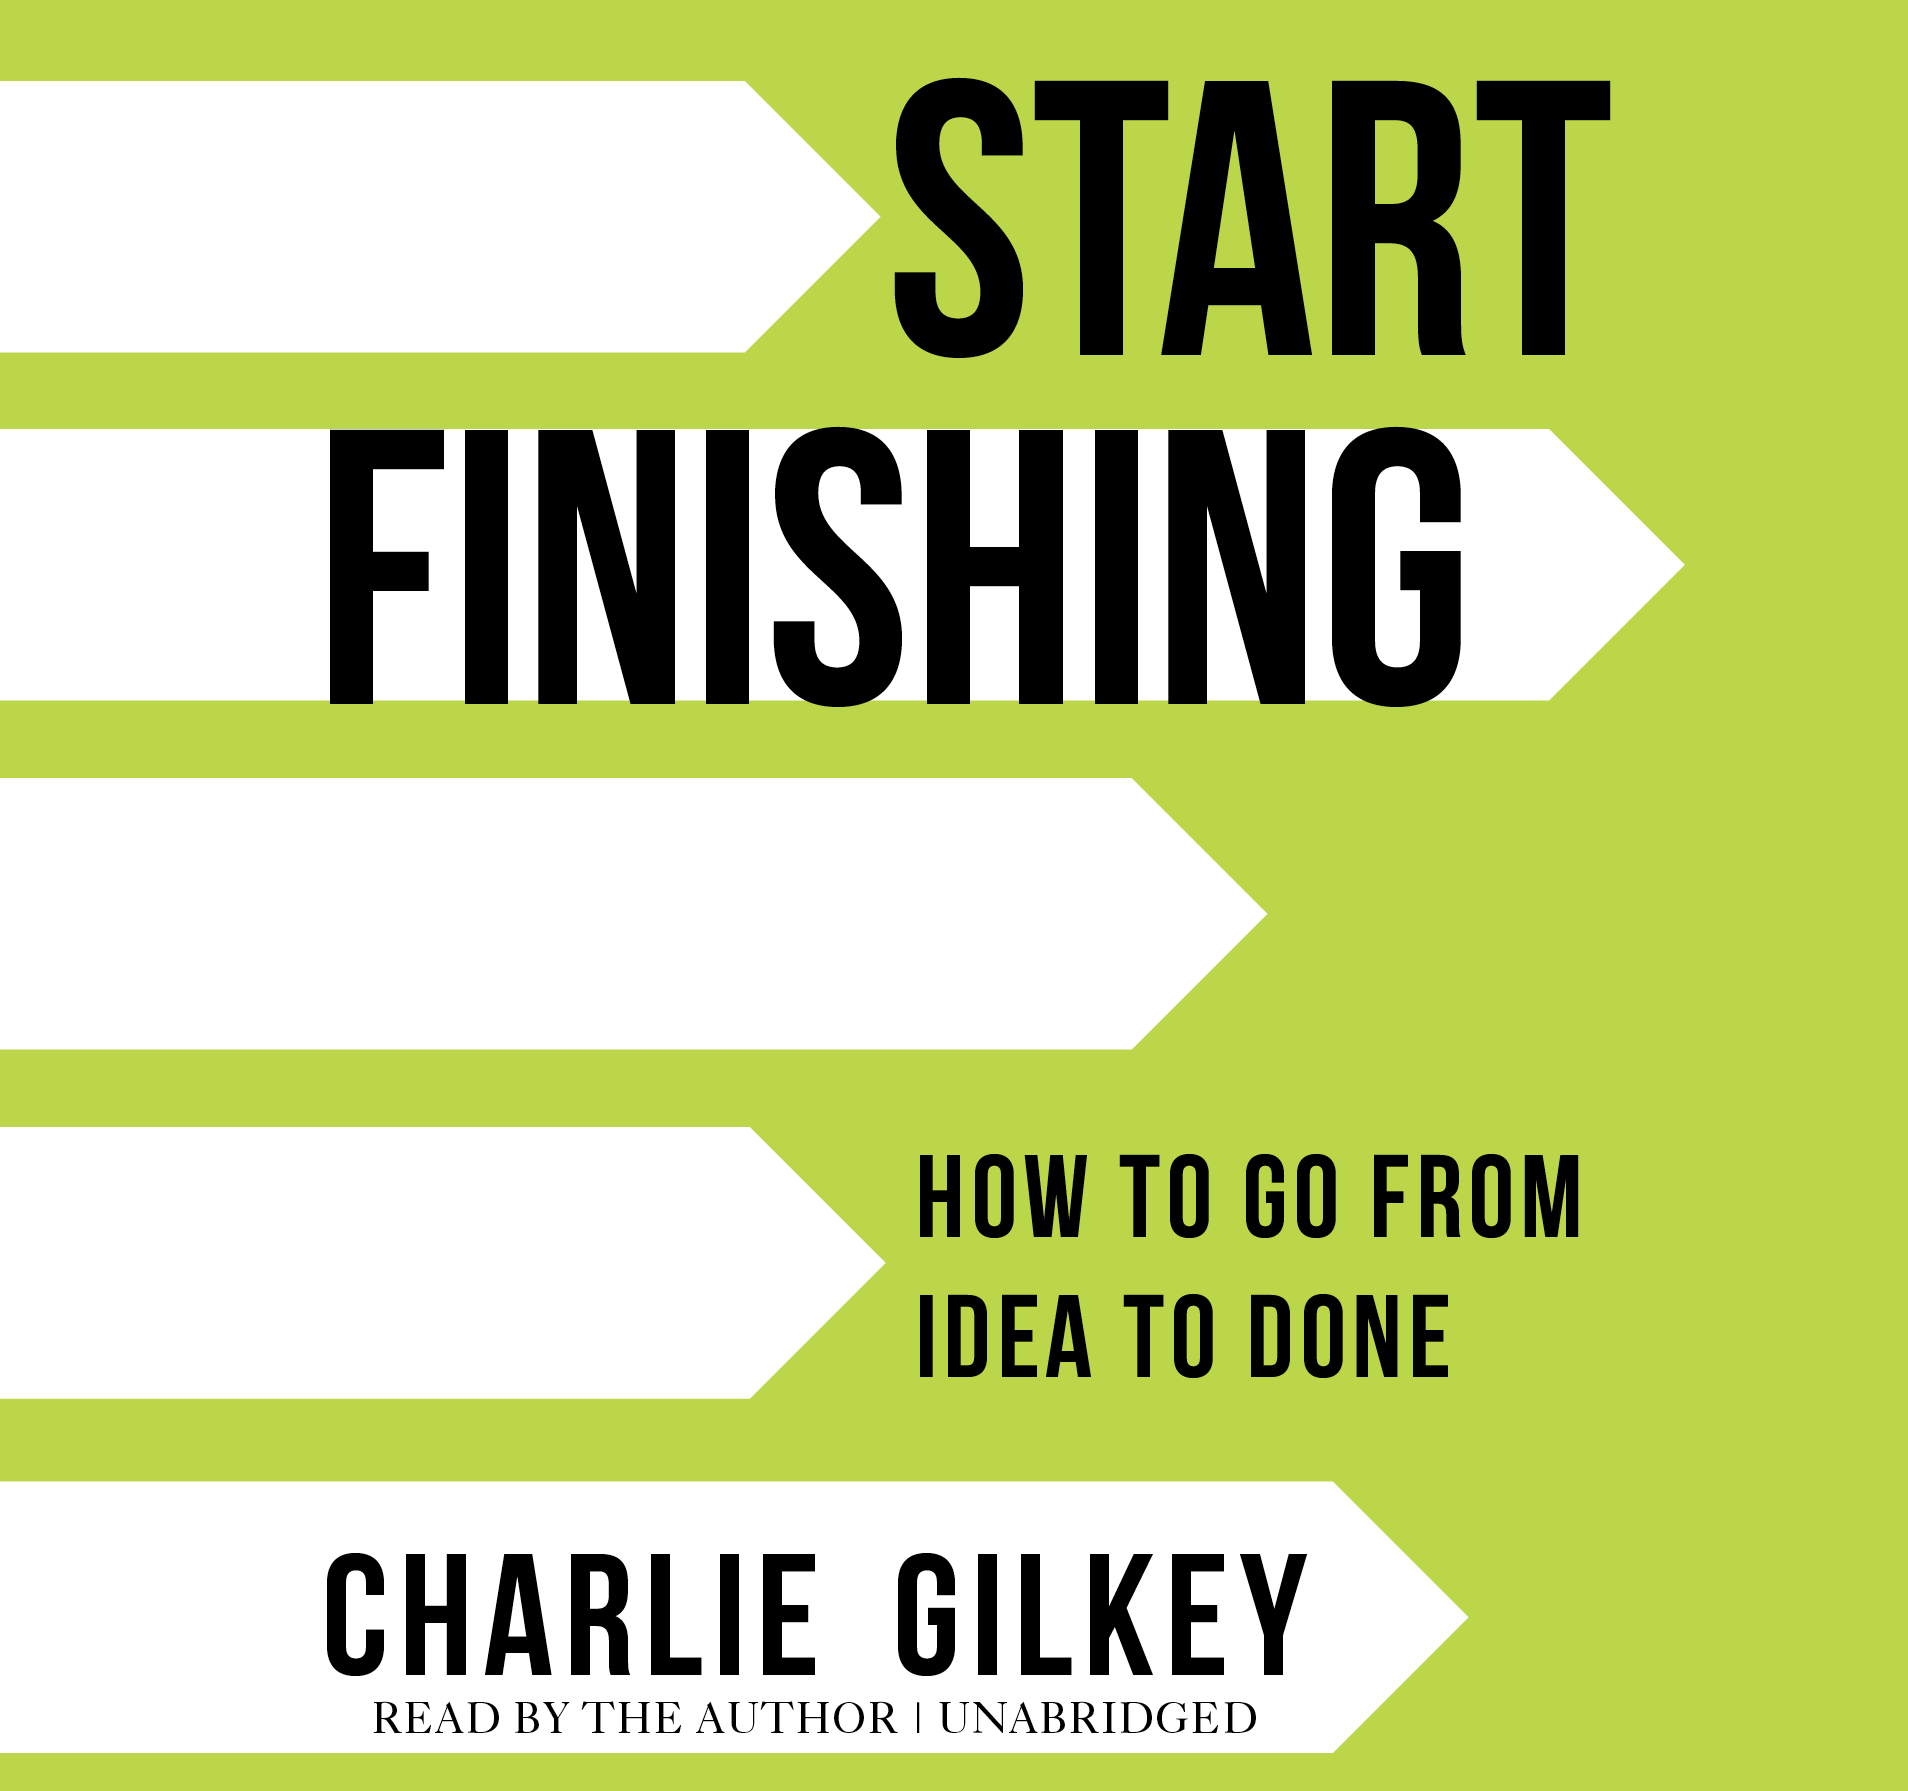 Start Finishing, Charlie Gilkey, Sounds True